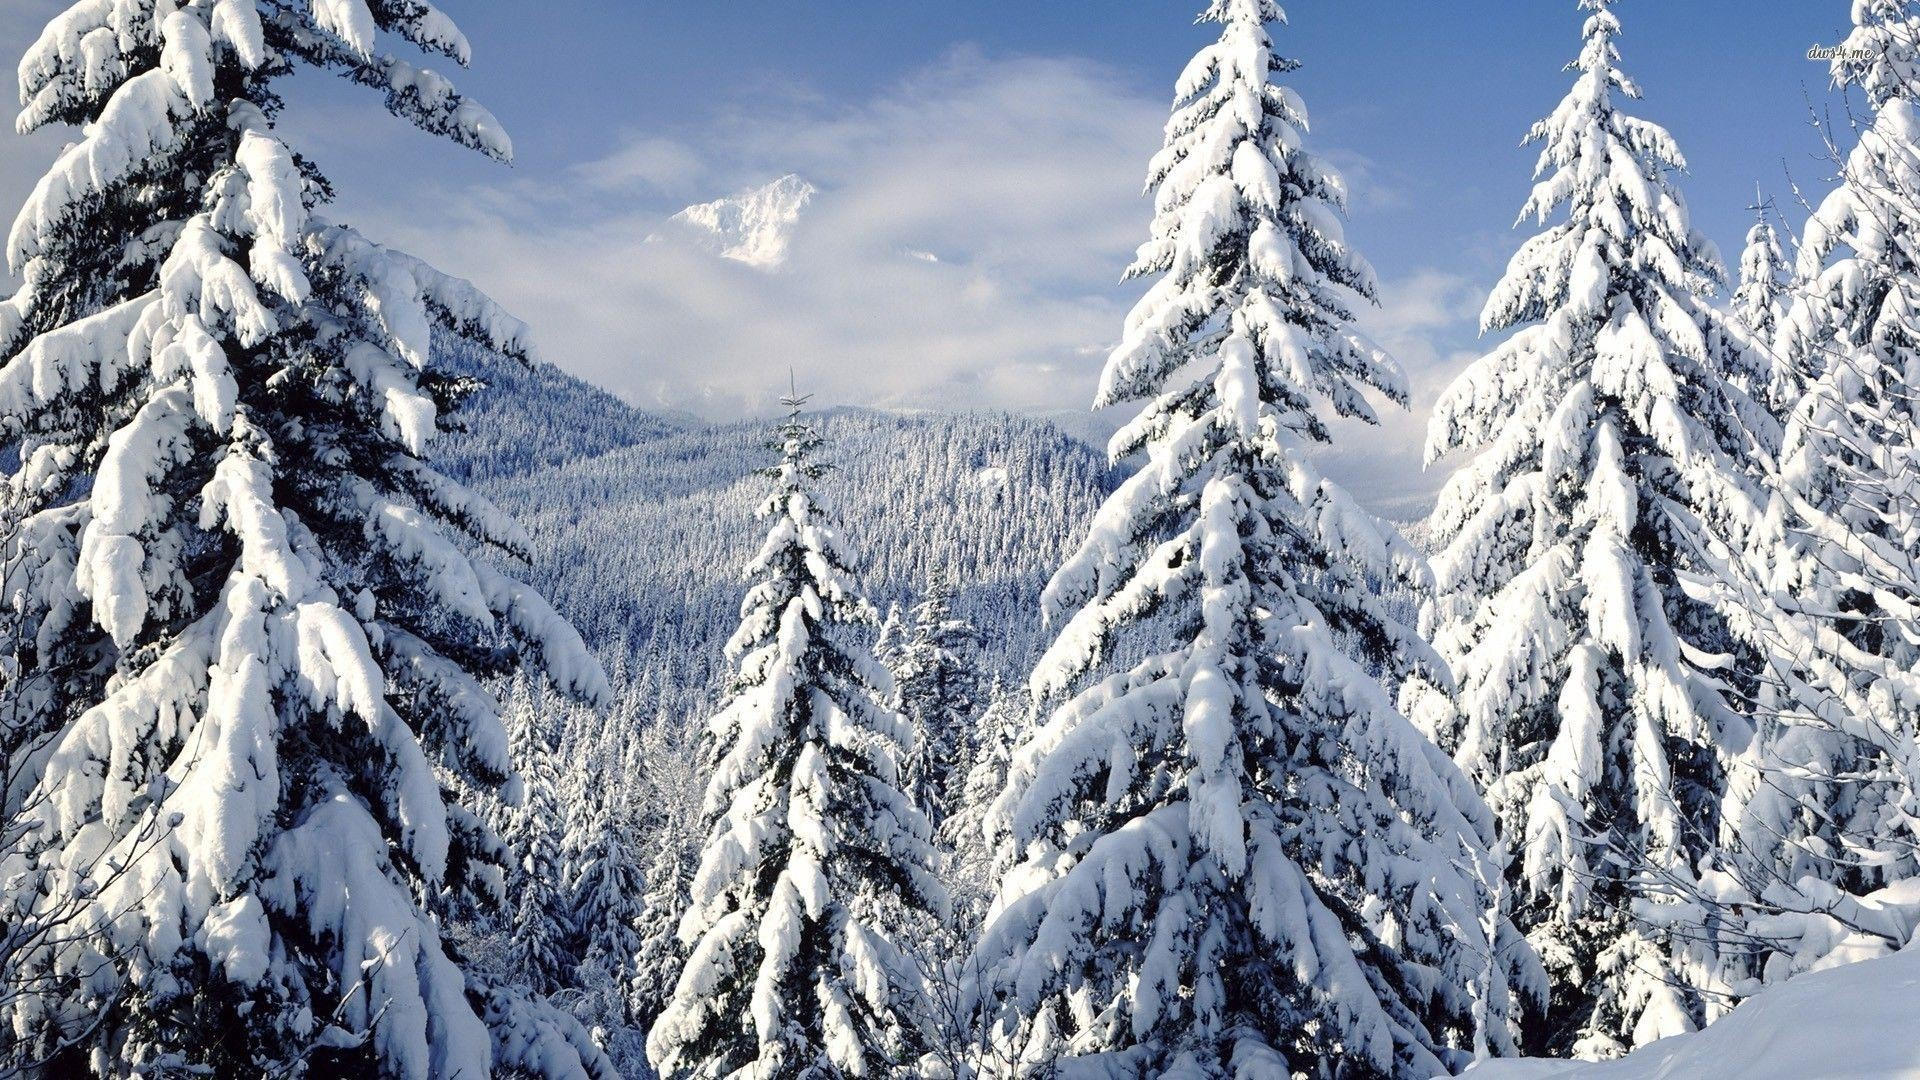 Res: 1920x1080, snowy trees wallpaper #761004